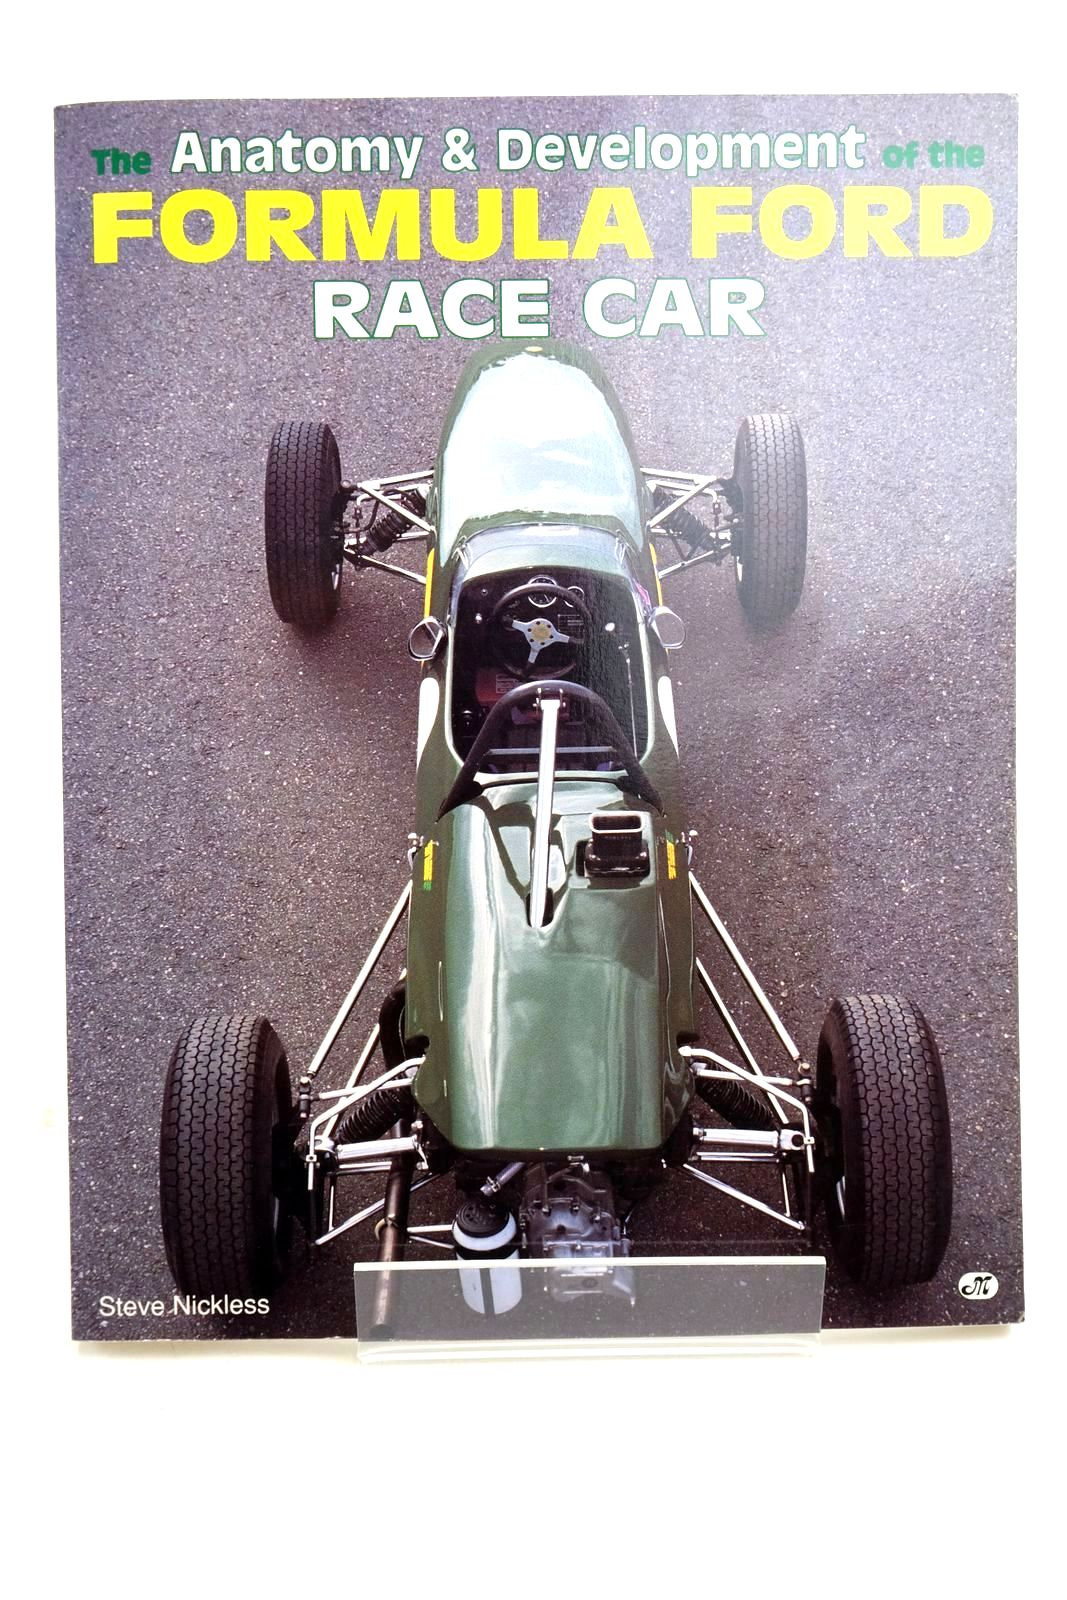 Photo of THE ANATOMY & DEVELOPMENT OF THE FORMULA FORD RACE CAR written by Nickless, Steve published by Motorbooks International (STOCK CODE: 1321244)  for sale by Stella & Rose's Books